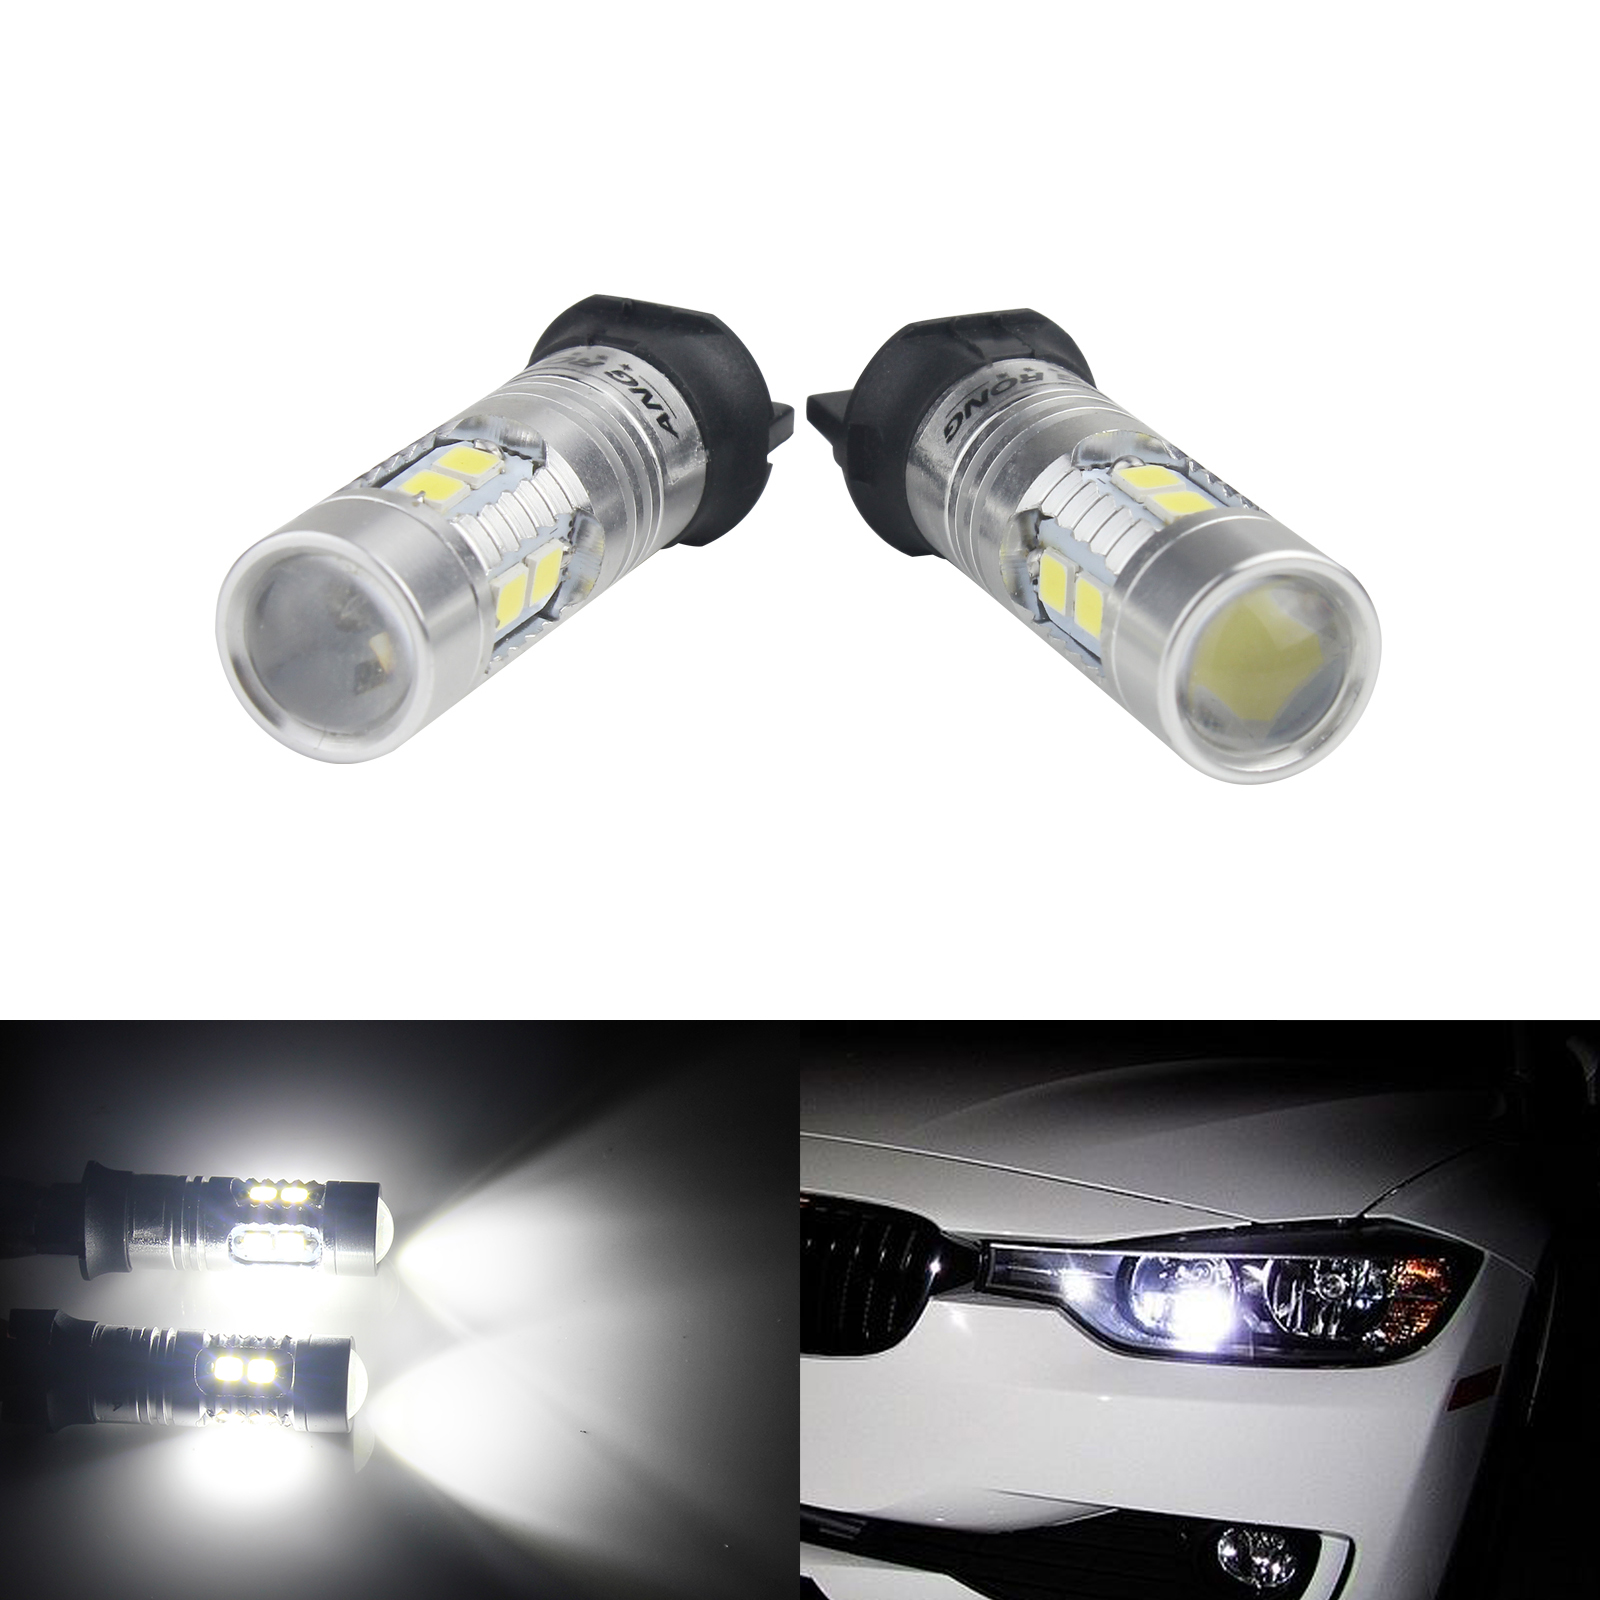 ANGRONG 2 x SAMSUNG SMD 10 LED High Power <font><b>PW24W</b></font> PWY24W DRL Daytime Running Light White image